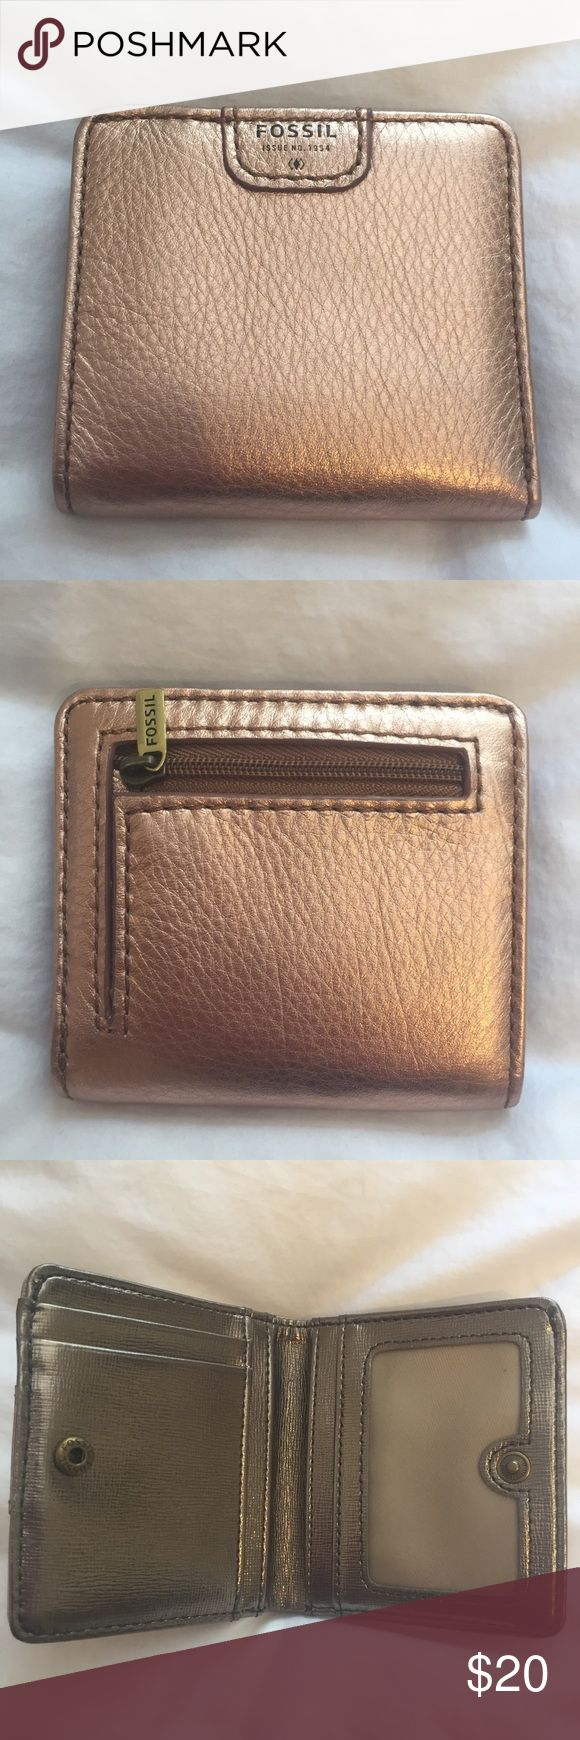 NWOT rose gold Fossil wallet NWOT bifold rose gold Fossil wallet with snap closure. 7 card slots including ID slot. Fossil Bags Wallets